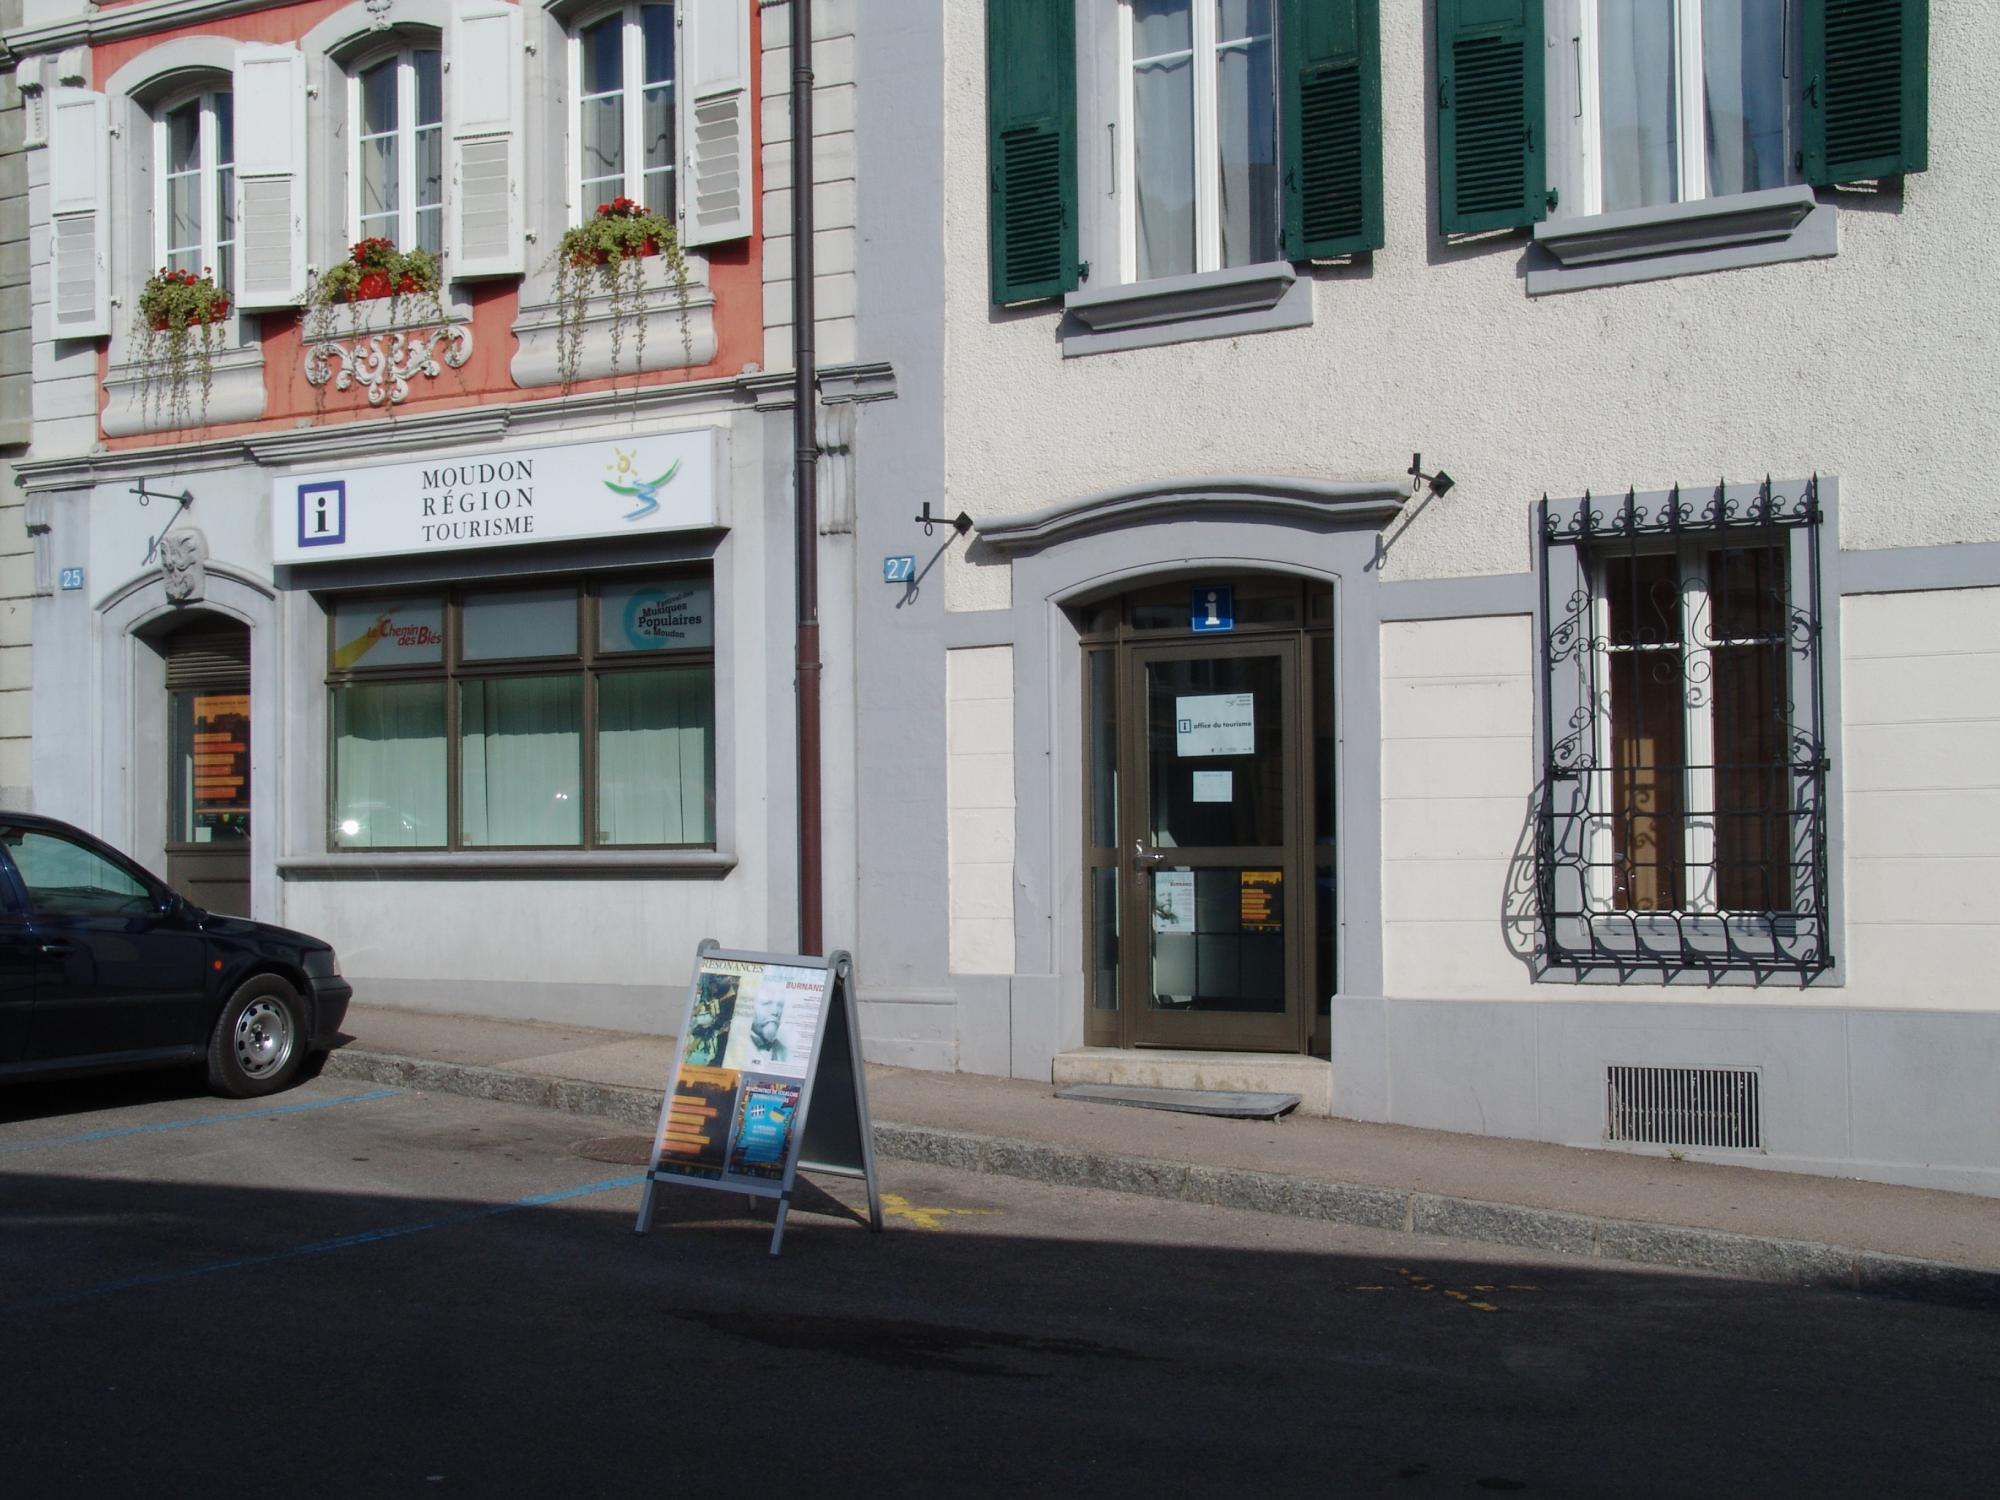 Office Du Tourisme Lausanne Tourist Office Moudon Region